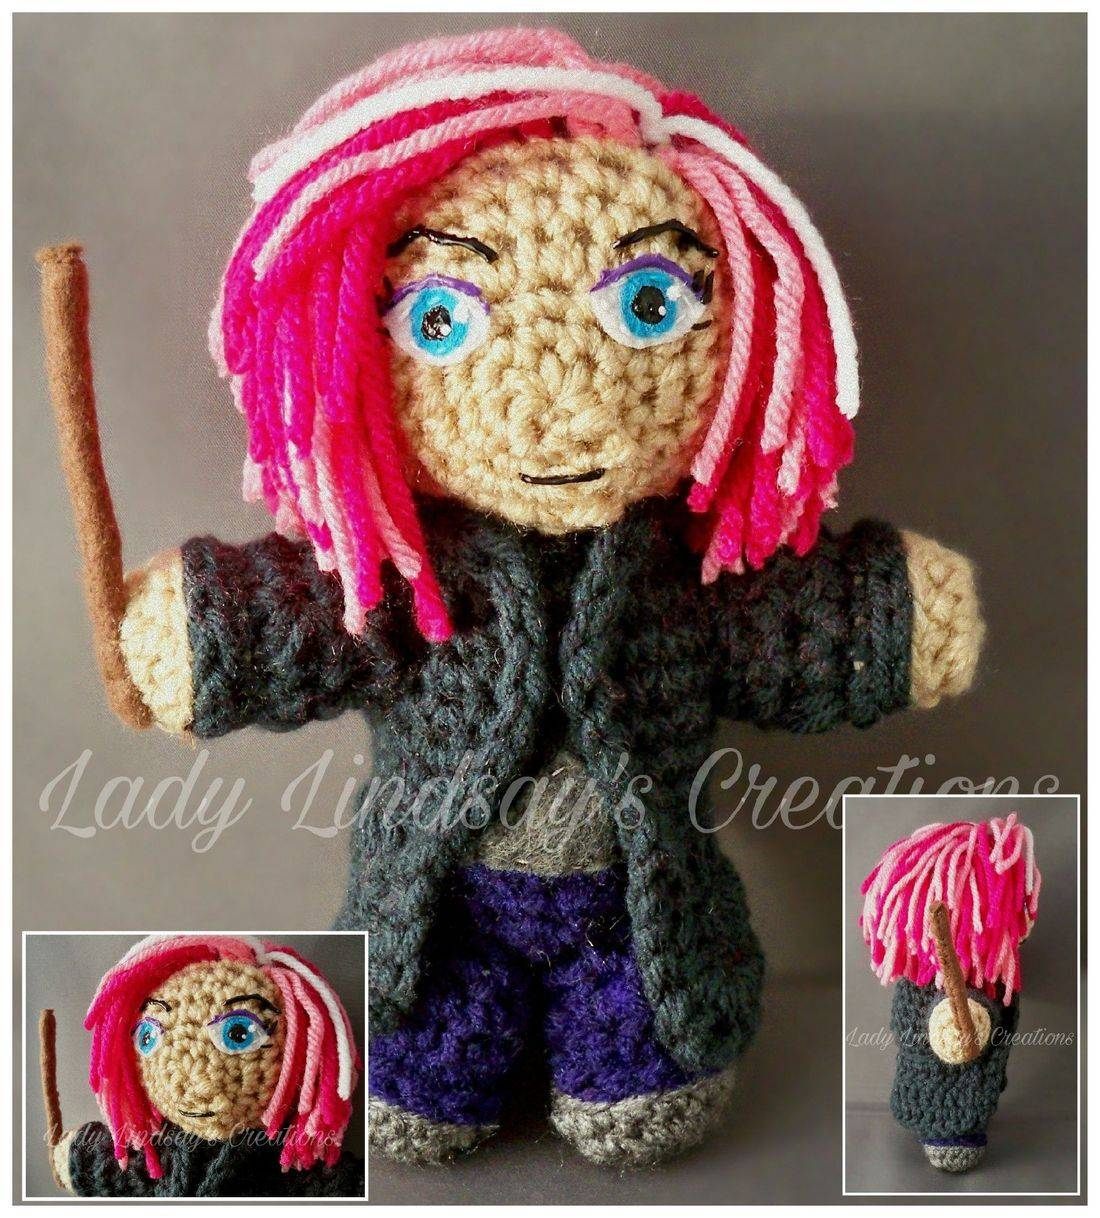 Nymphadora Tonks, Tonk, Harry Potter, Witch, Wizard, Amigurumi, Plush, Crochet, handmade, Shop Small, Etsy, nerd, geek, kawaii, otaku, anime, fantasy, Magic, handmade